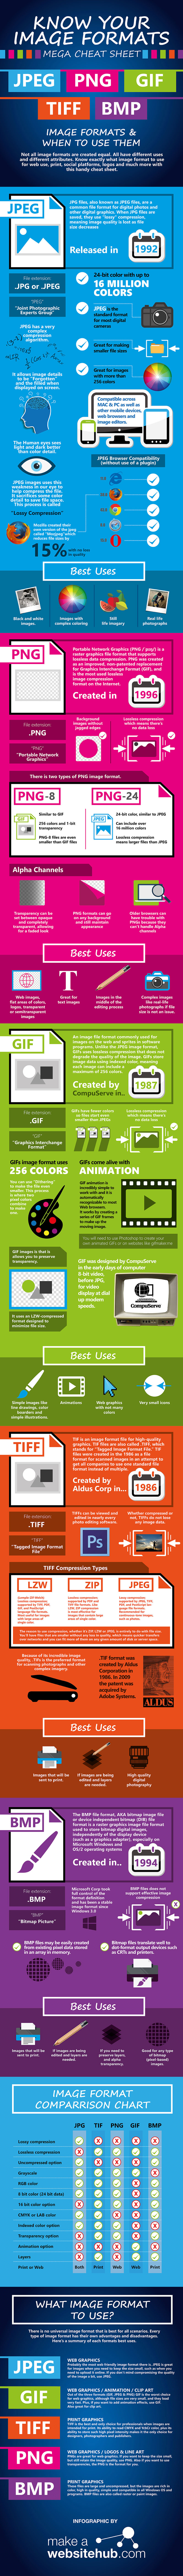 Know your image formats.